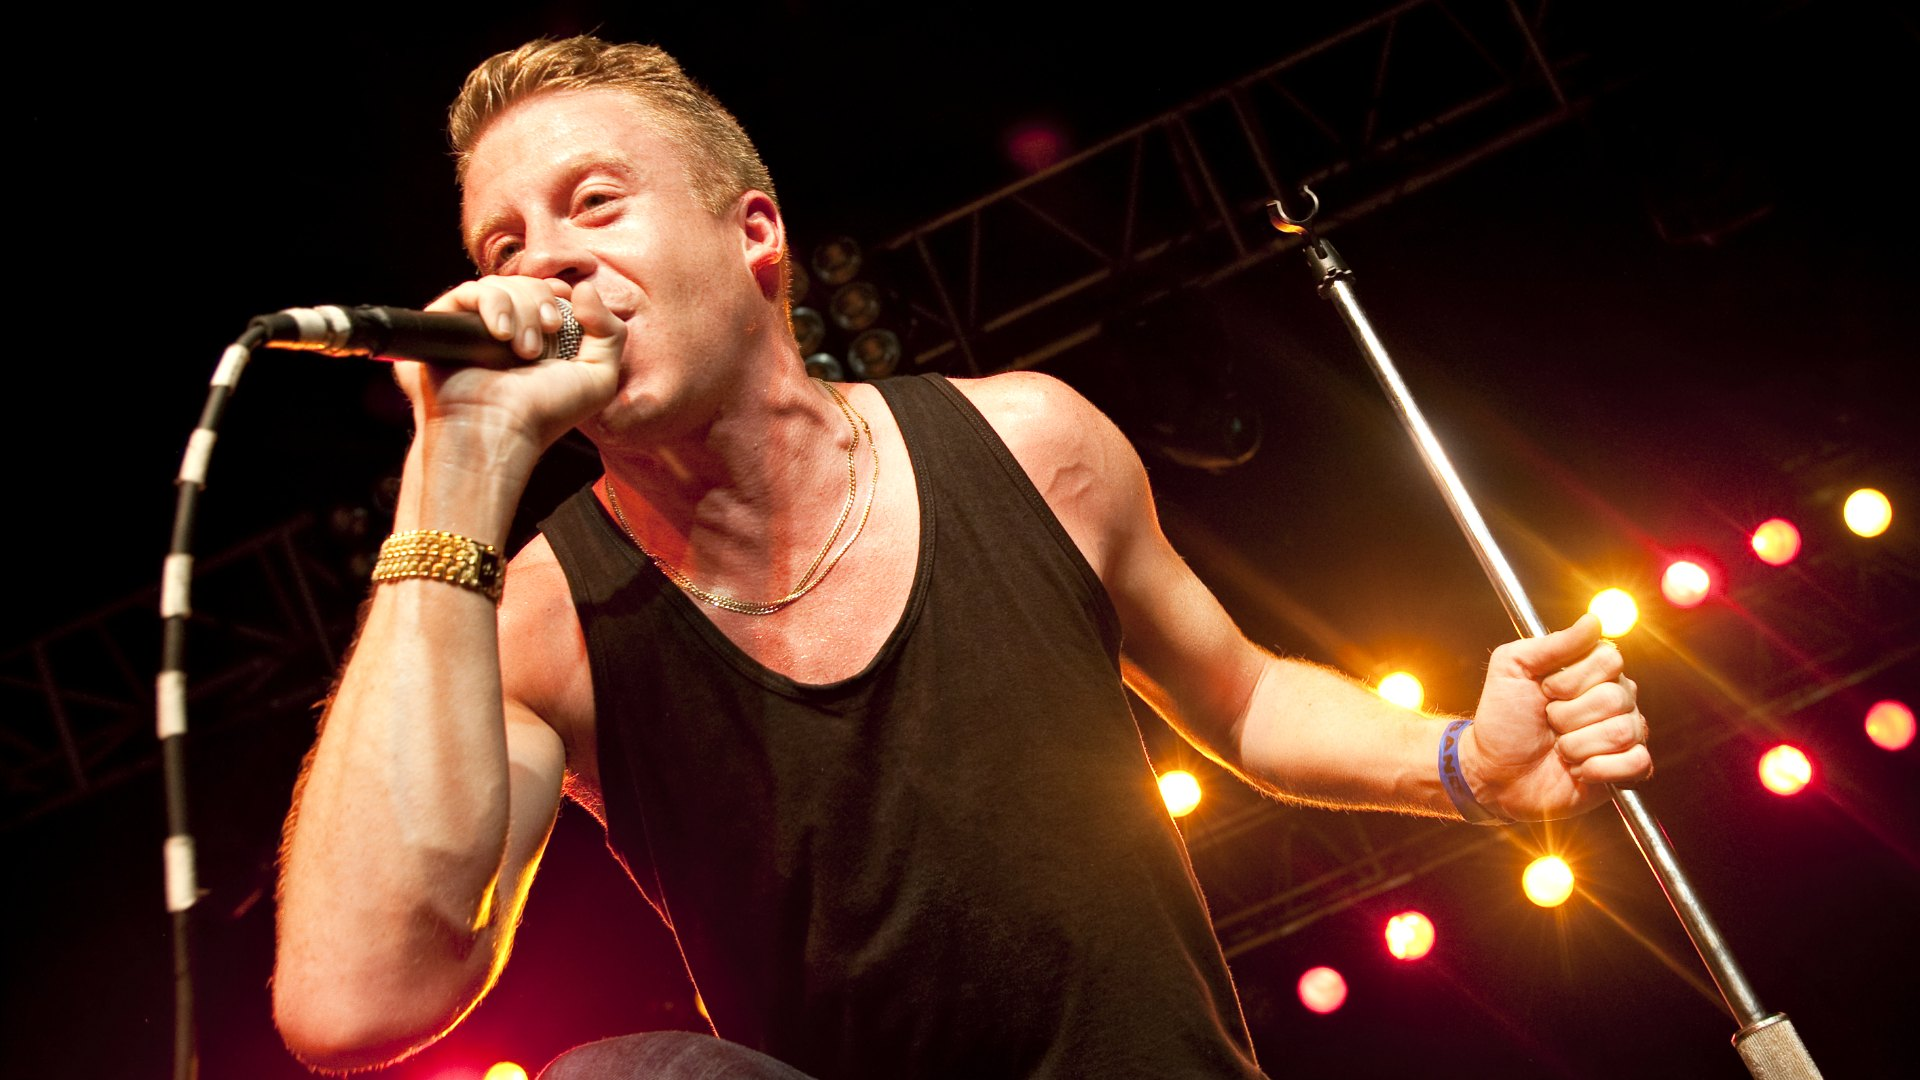 """Download the following Free Macklemore Wallpaper 21608 by clicking the orange button positioned underneath the """"Download Wallpaper"""" section."""